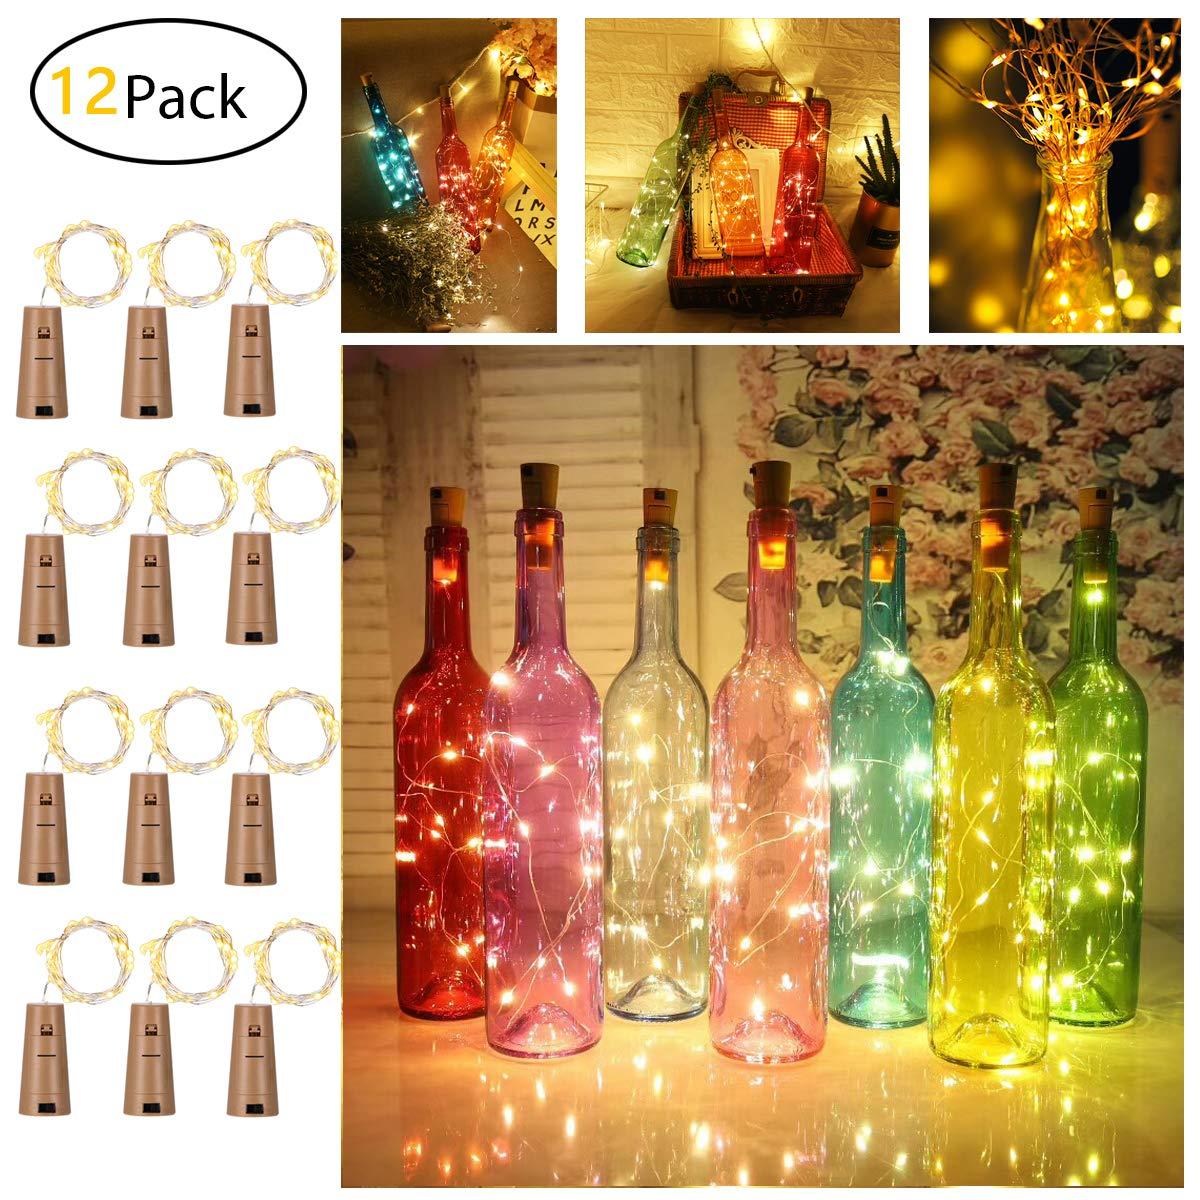 12 Packs Wine Bottle Cork Lights,YOUNGFOECE 20 LED Low Voltage Copper Wire Lights String Starry Fairy Indoor Decoration for Bottle DIY, Party, Wedding, Ceremony (Warm White 2M / 6.5 Ft)